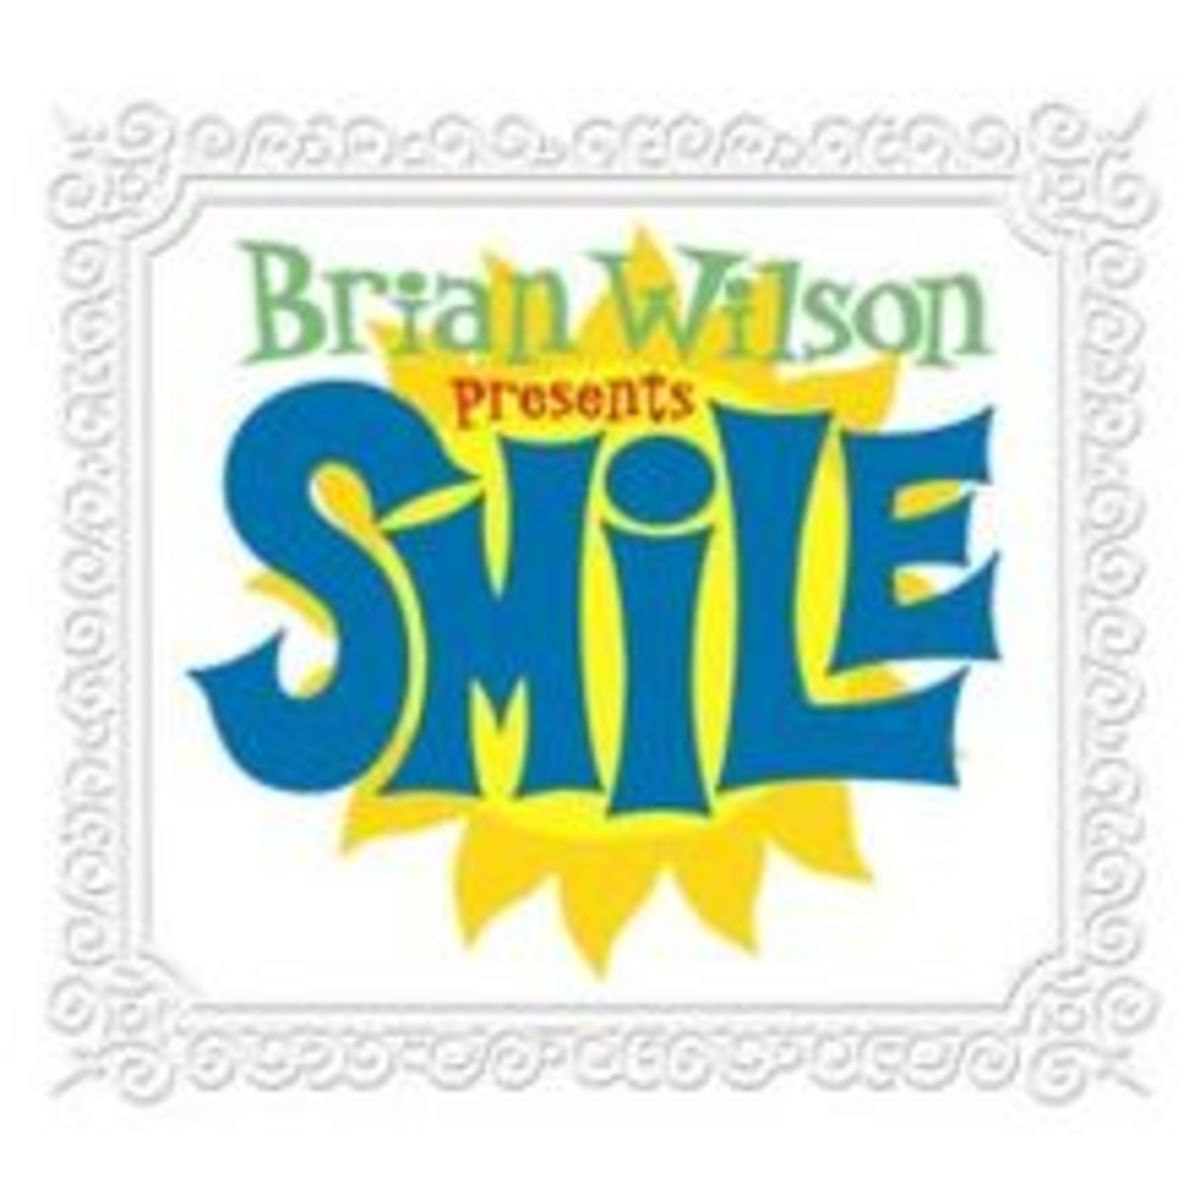 The album cover for Brian Wilson's finished masterpiece, SMILE.